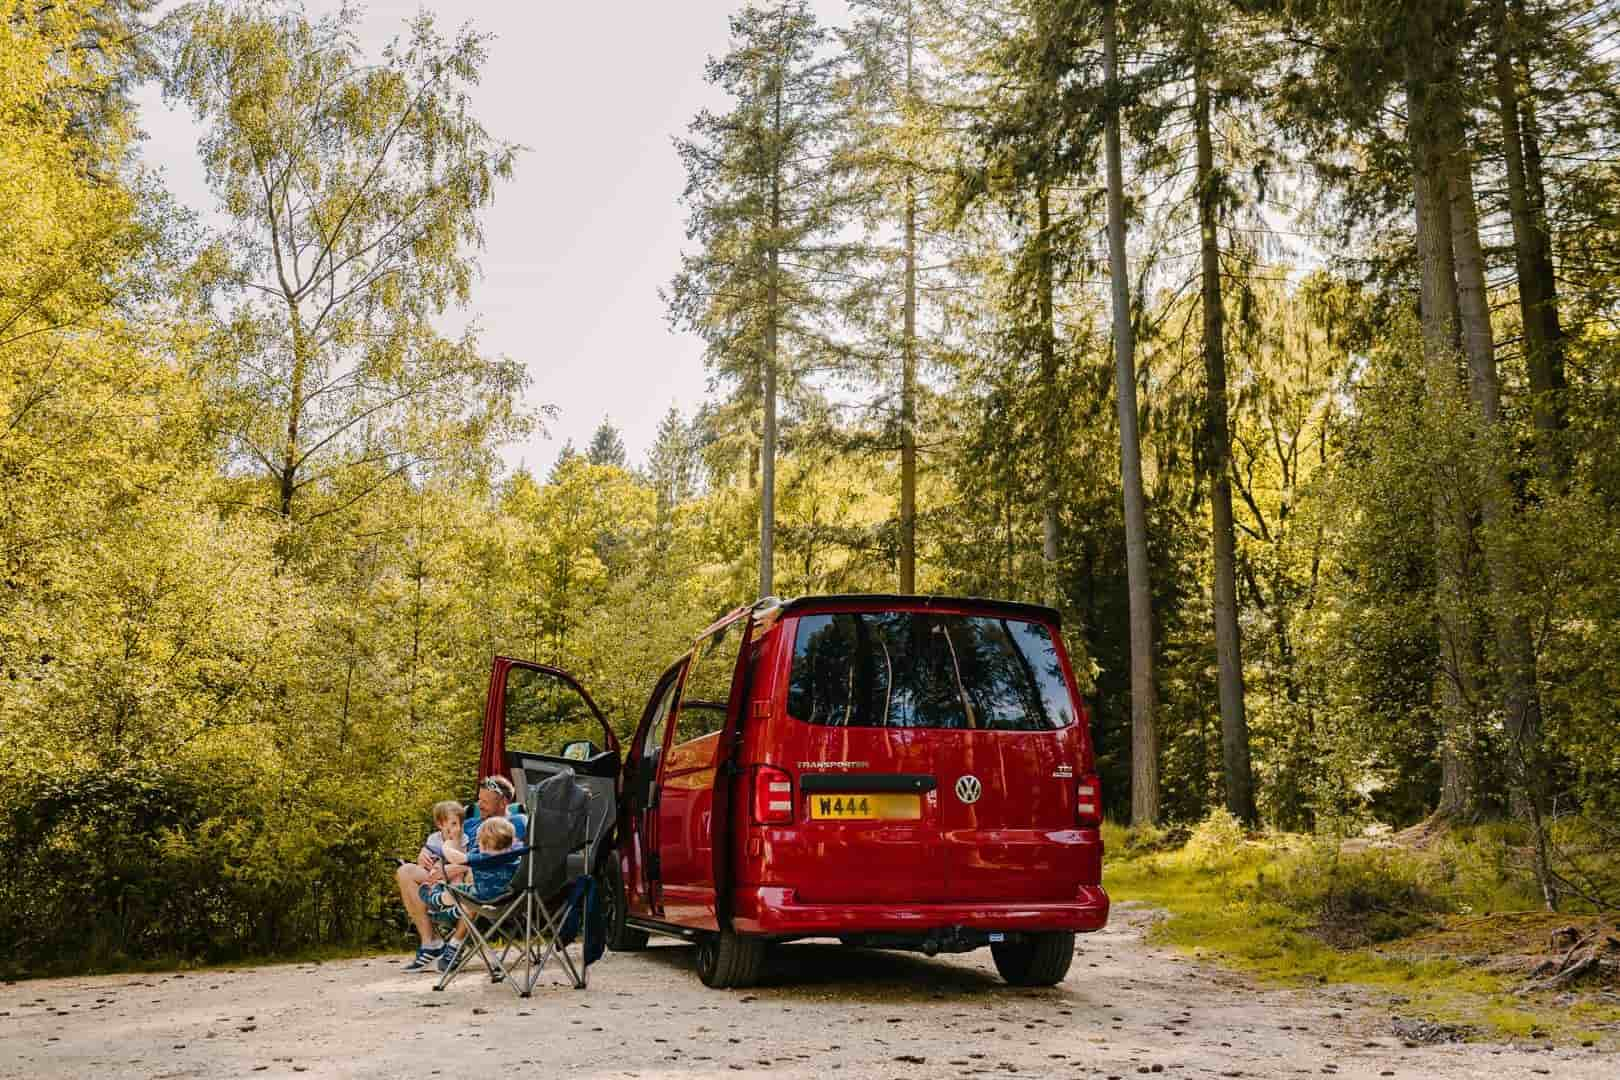 Campervan in a forest area